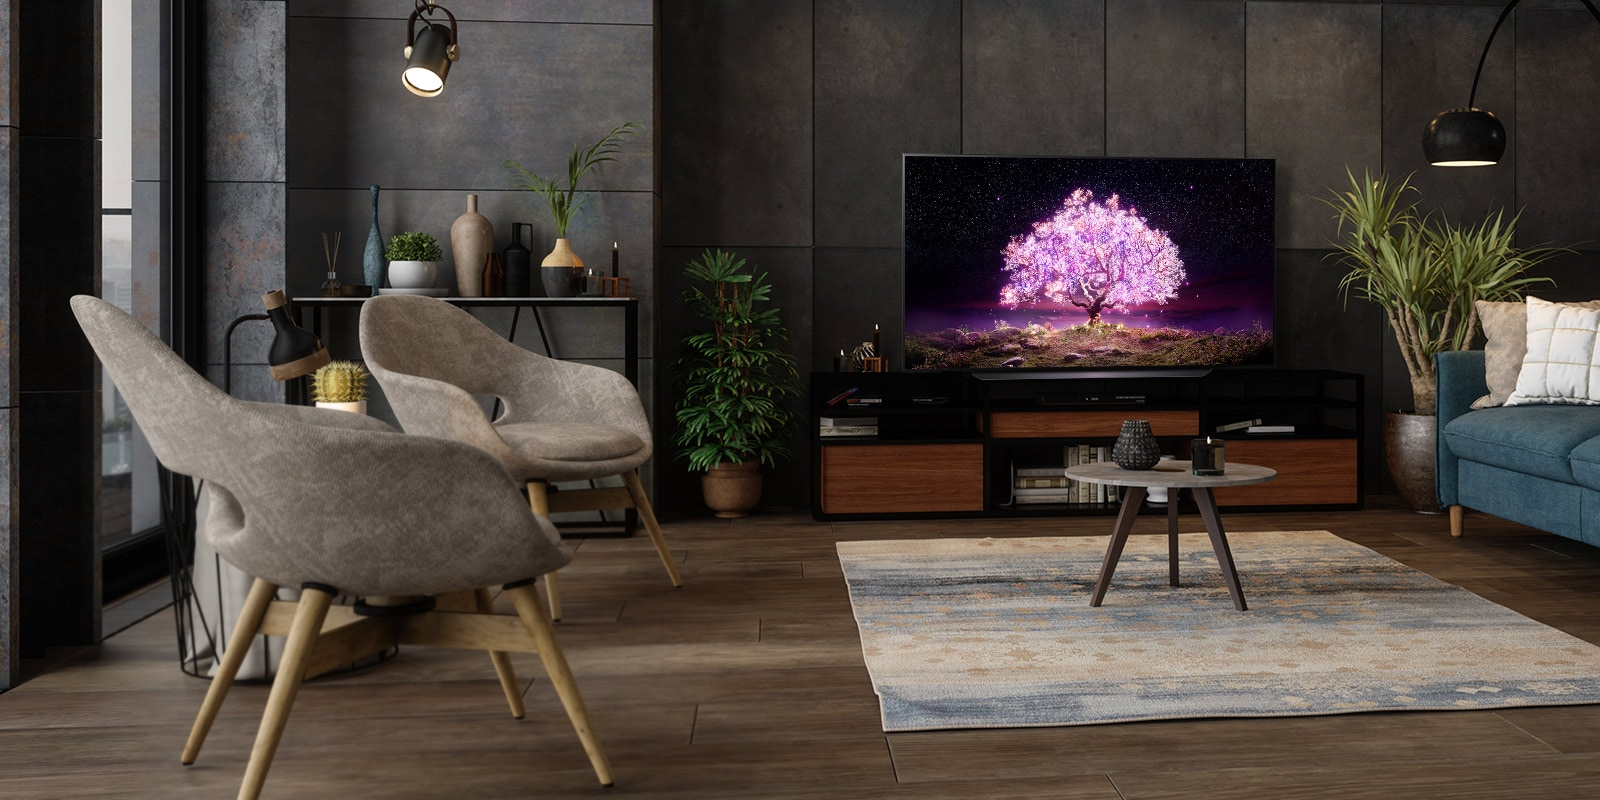 A television shows a tree glowing purple in a luxurious home setting